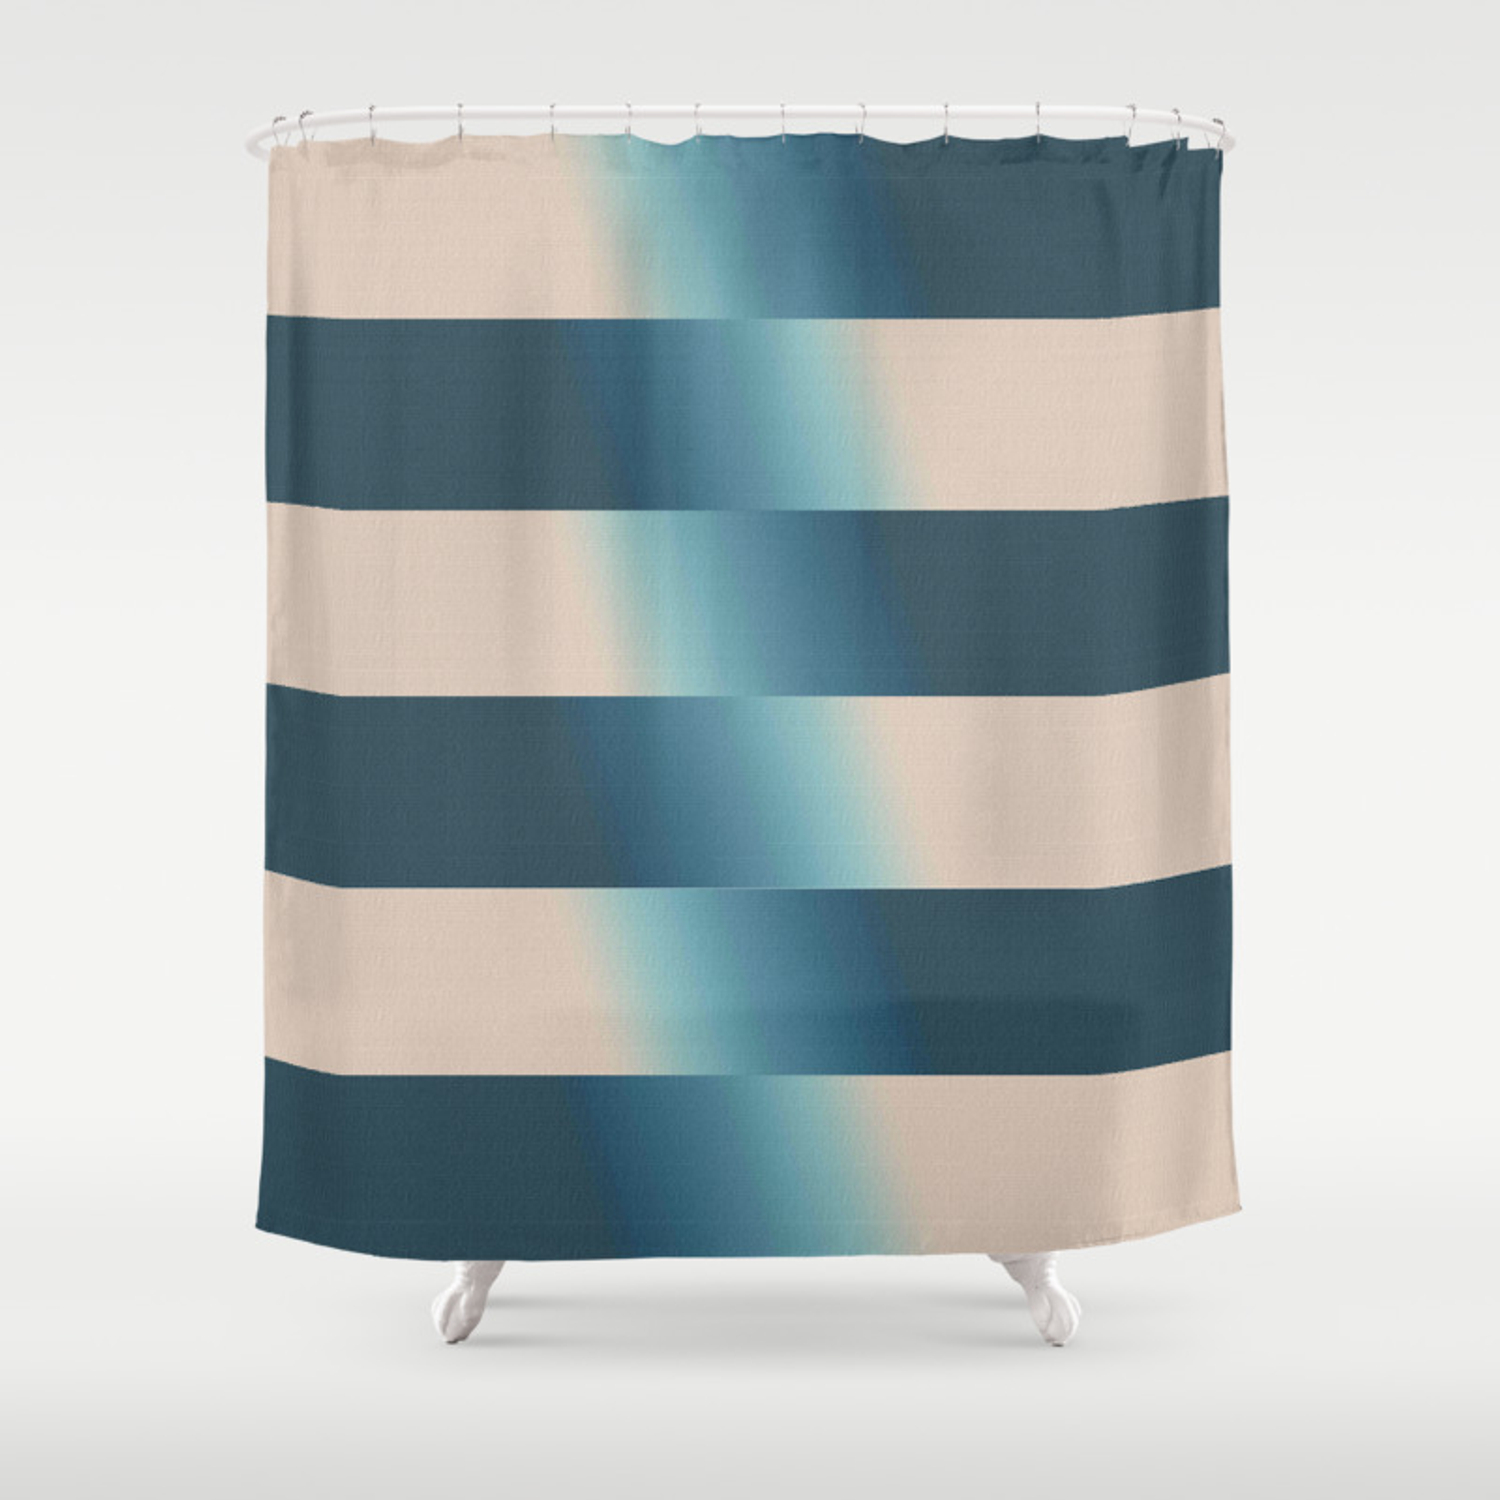 Home Goods Shower Curtains.Woven Gradients Contemporary Home Goods Shower Curtain